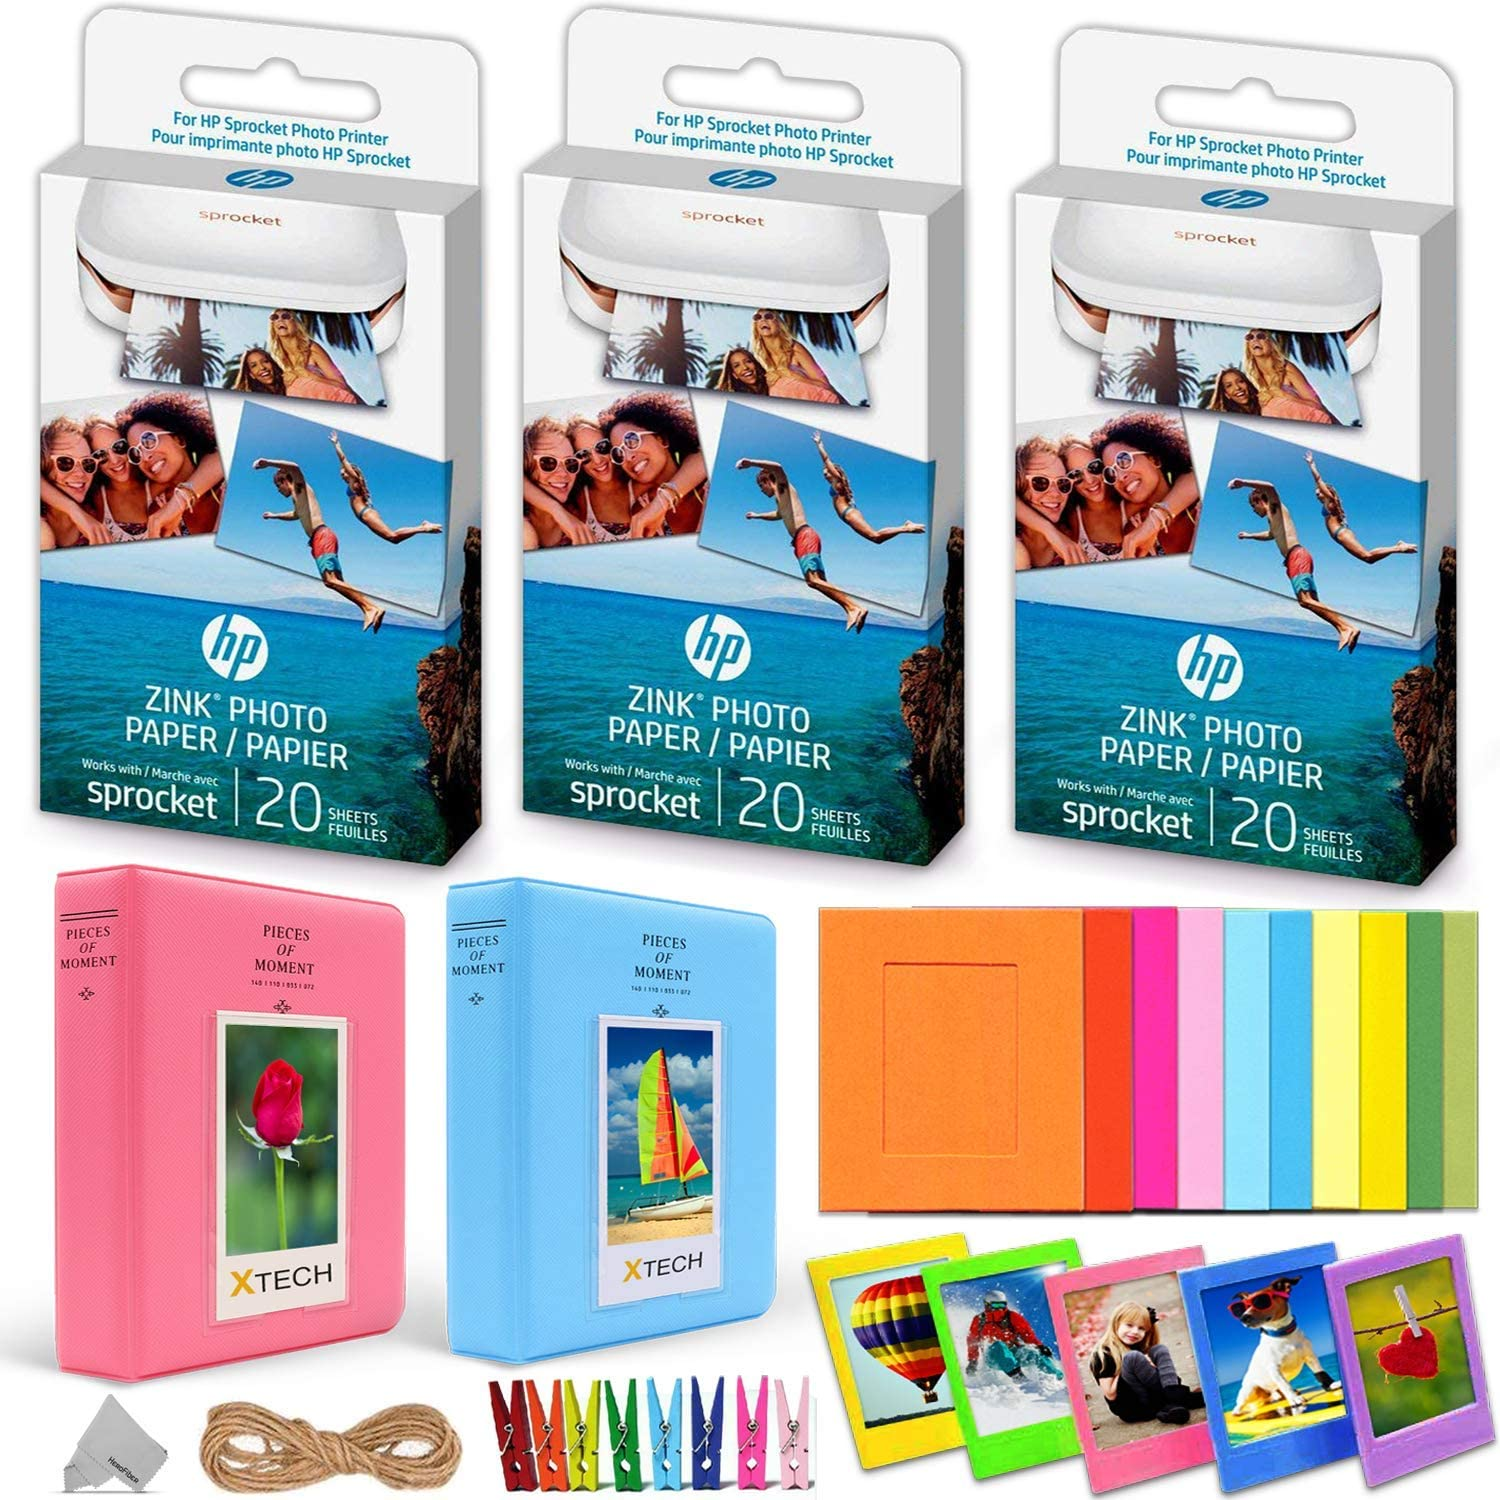 3 Pack HP Sprocket Photo Paper (60 Sticky-Backed Sheets Total) + Accessories Kit for HP Sprocket Portable Photo Printer, 2 Photo Albums, 10 Paper Frames, 10 Plastic Frames, Hanging Clips/String